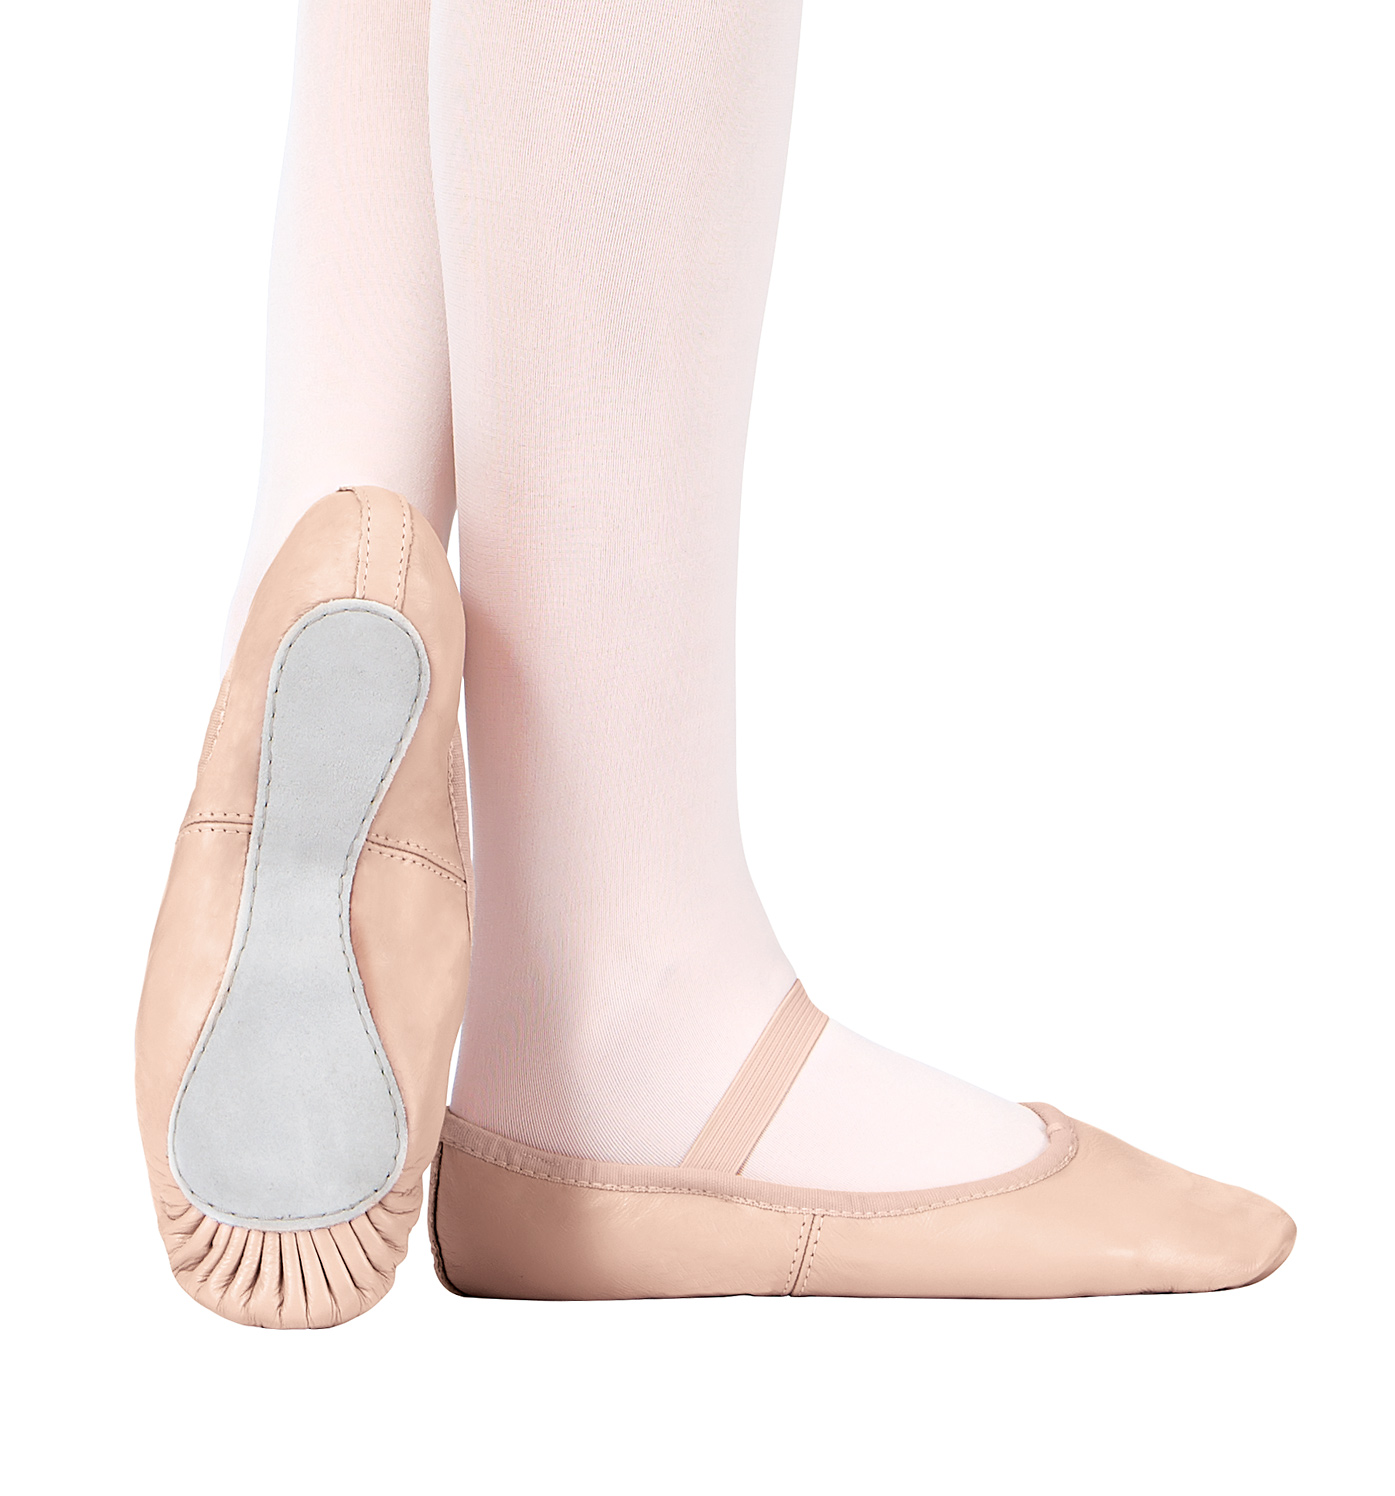 Child Premium Leather Full Sole Ballet Shoes by THEATRICALS